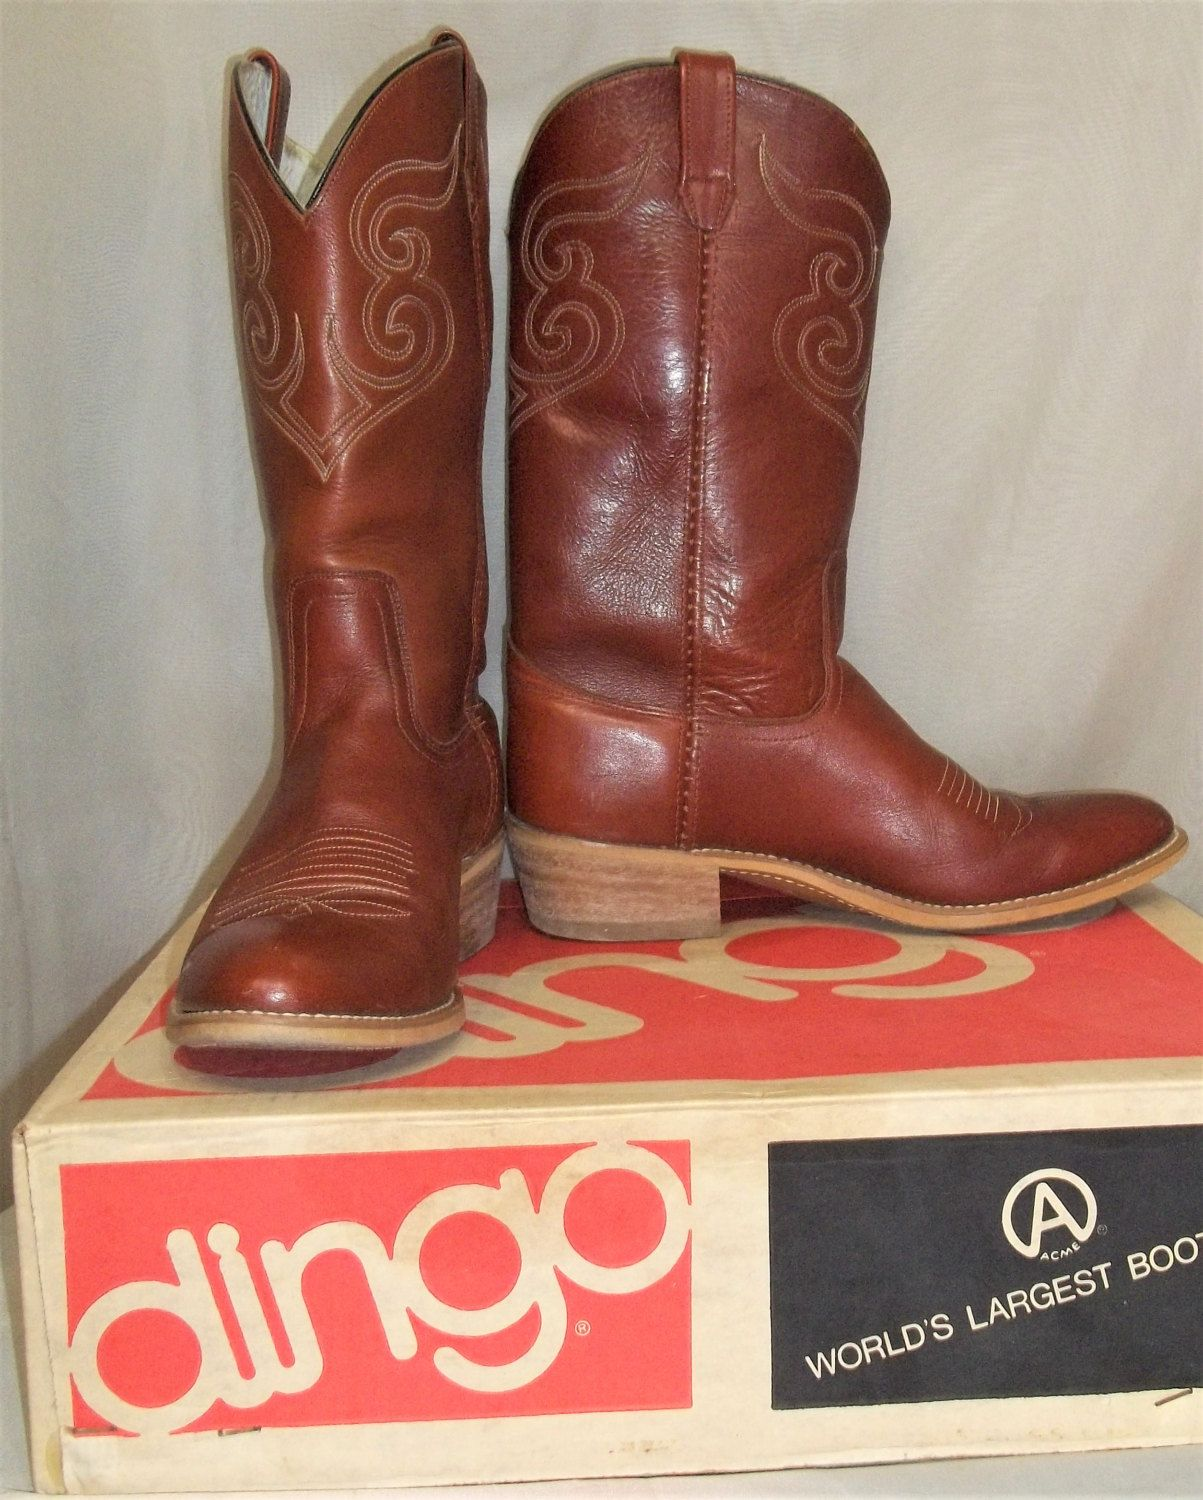 c38815e35d1 Vintage Acme/Dingo Men's Cowboy Western Leather Boots Size 10 1/2 D ...